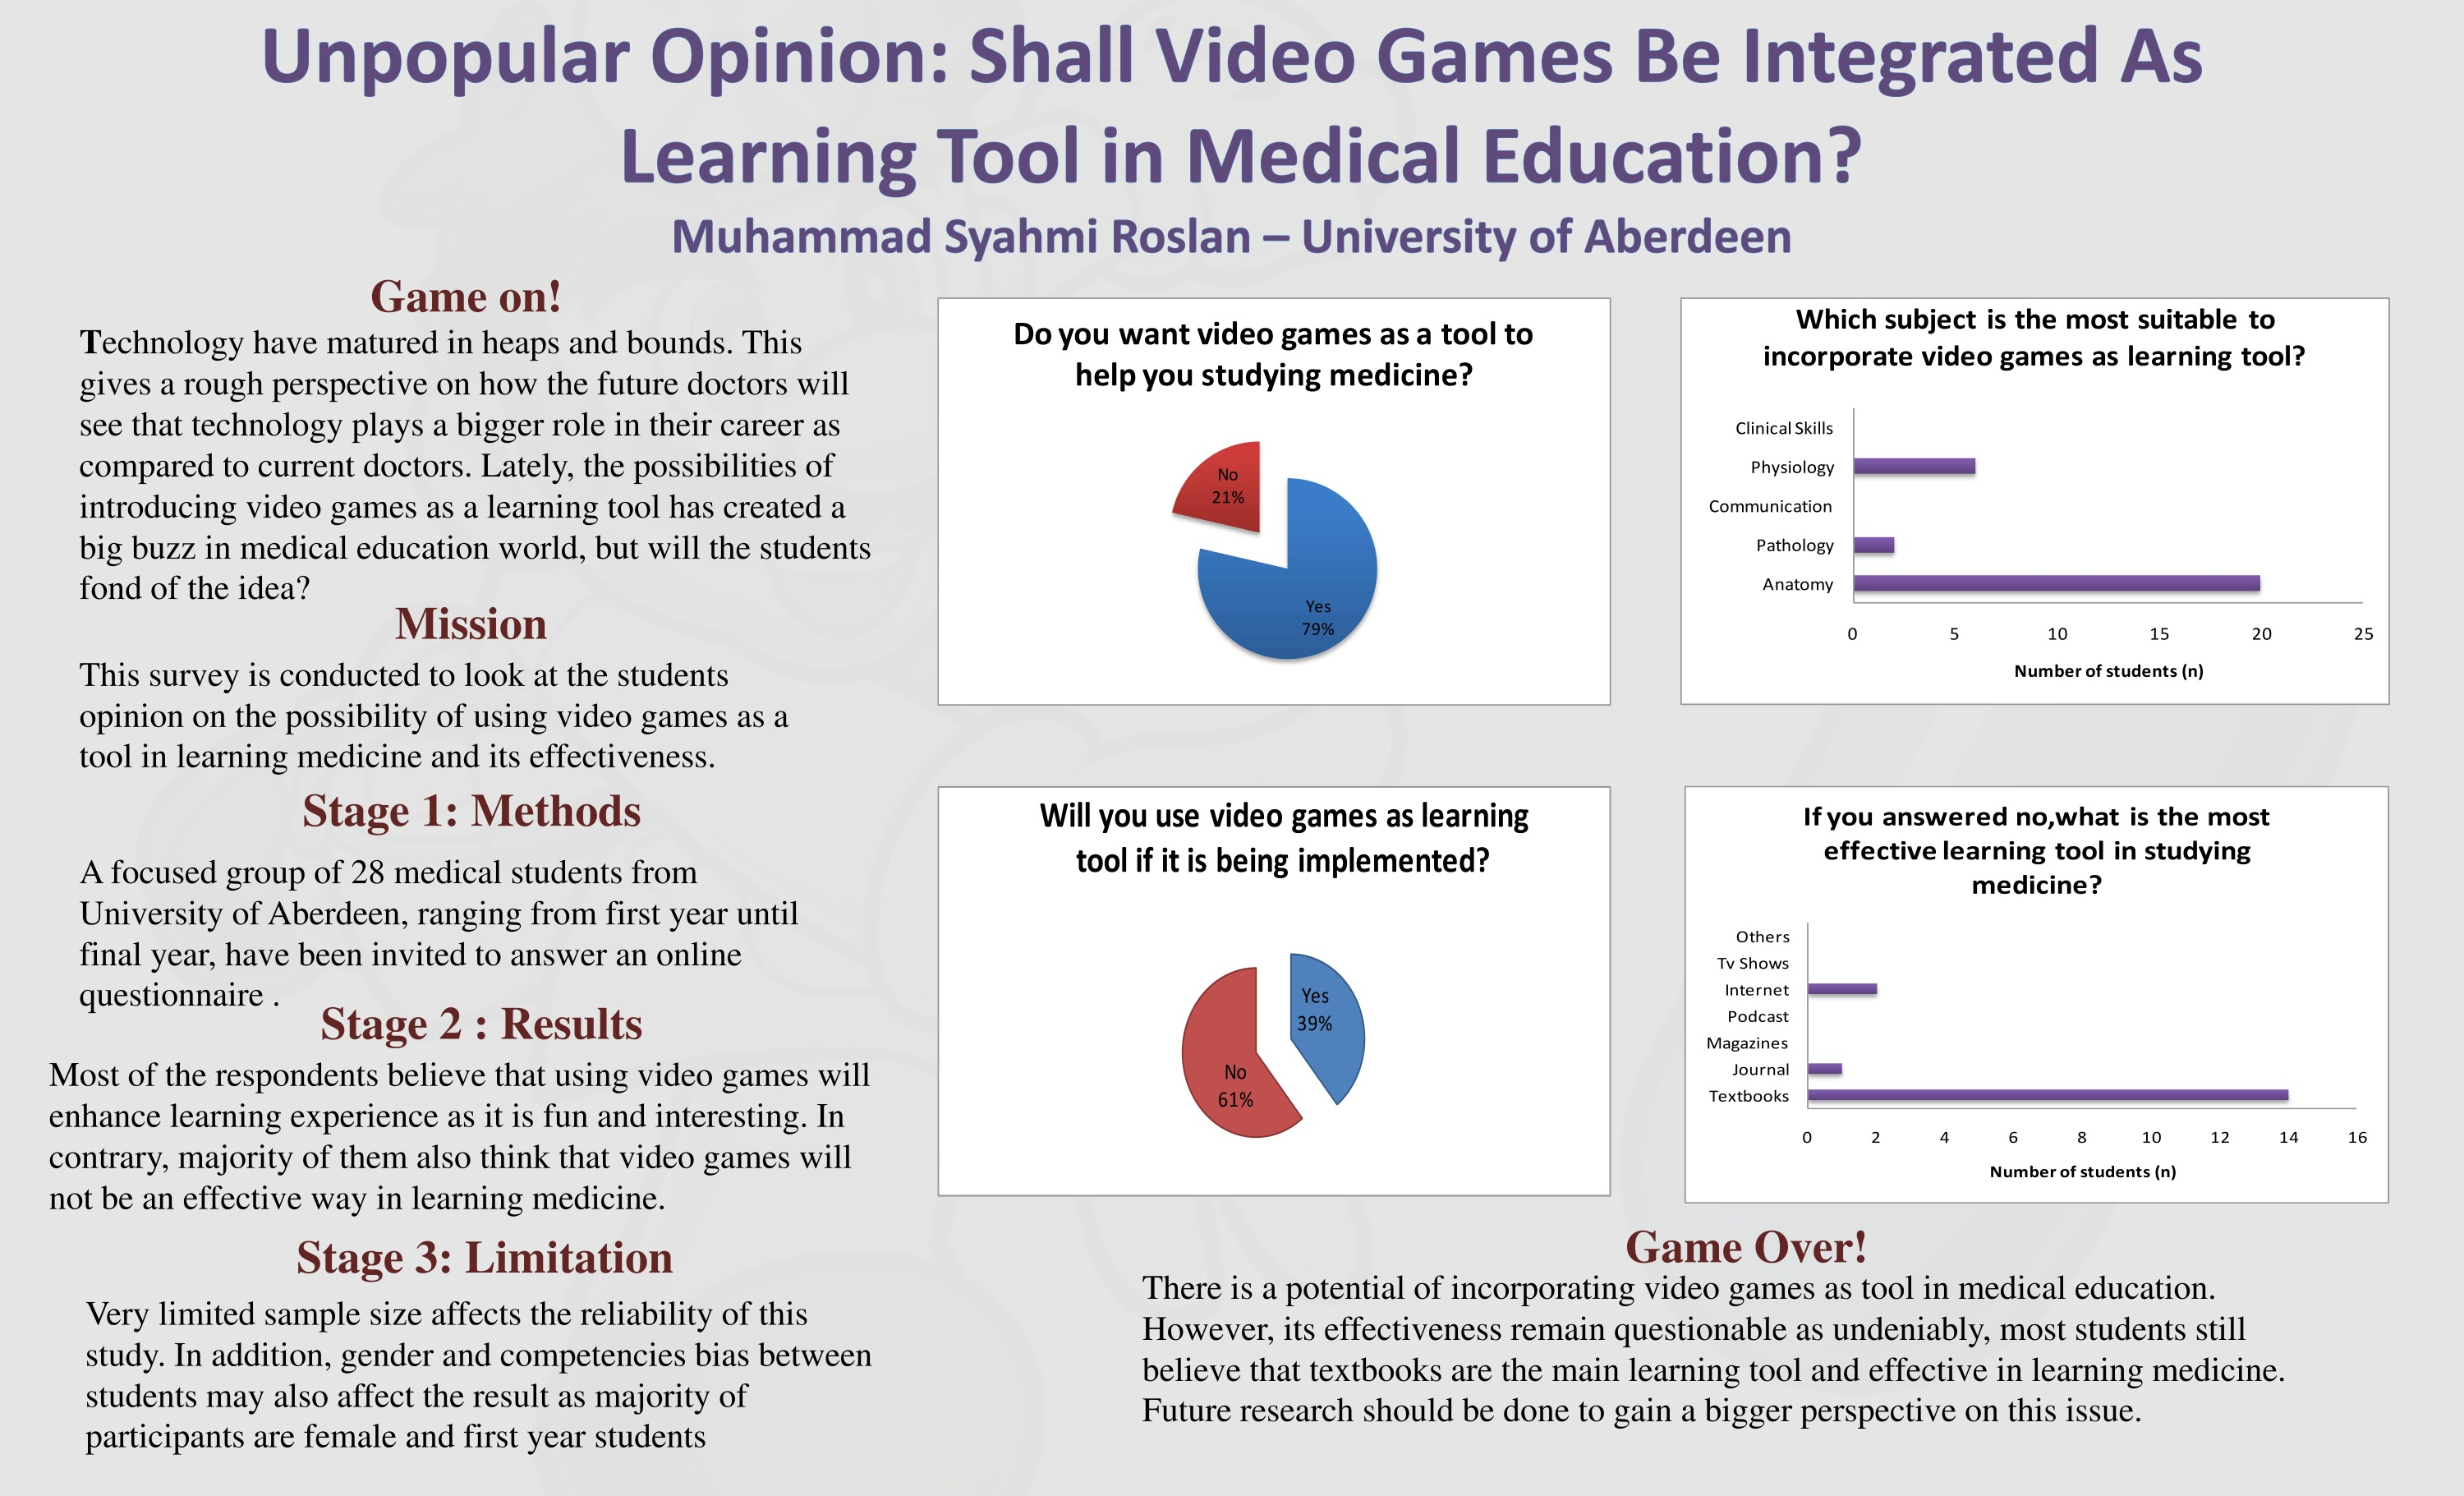 Should video games be incorporated into medical education?